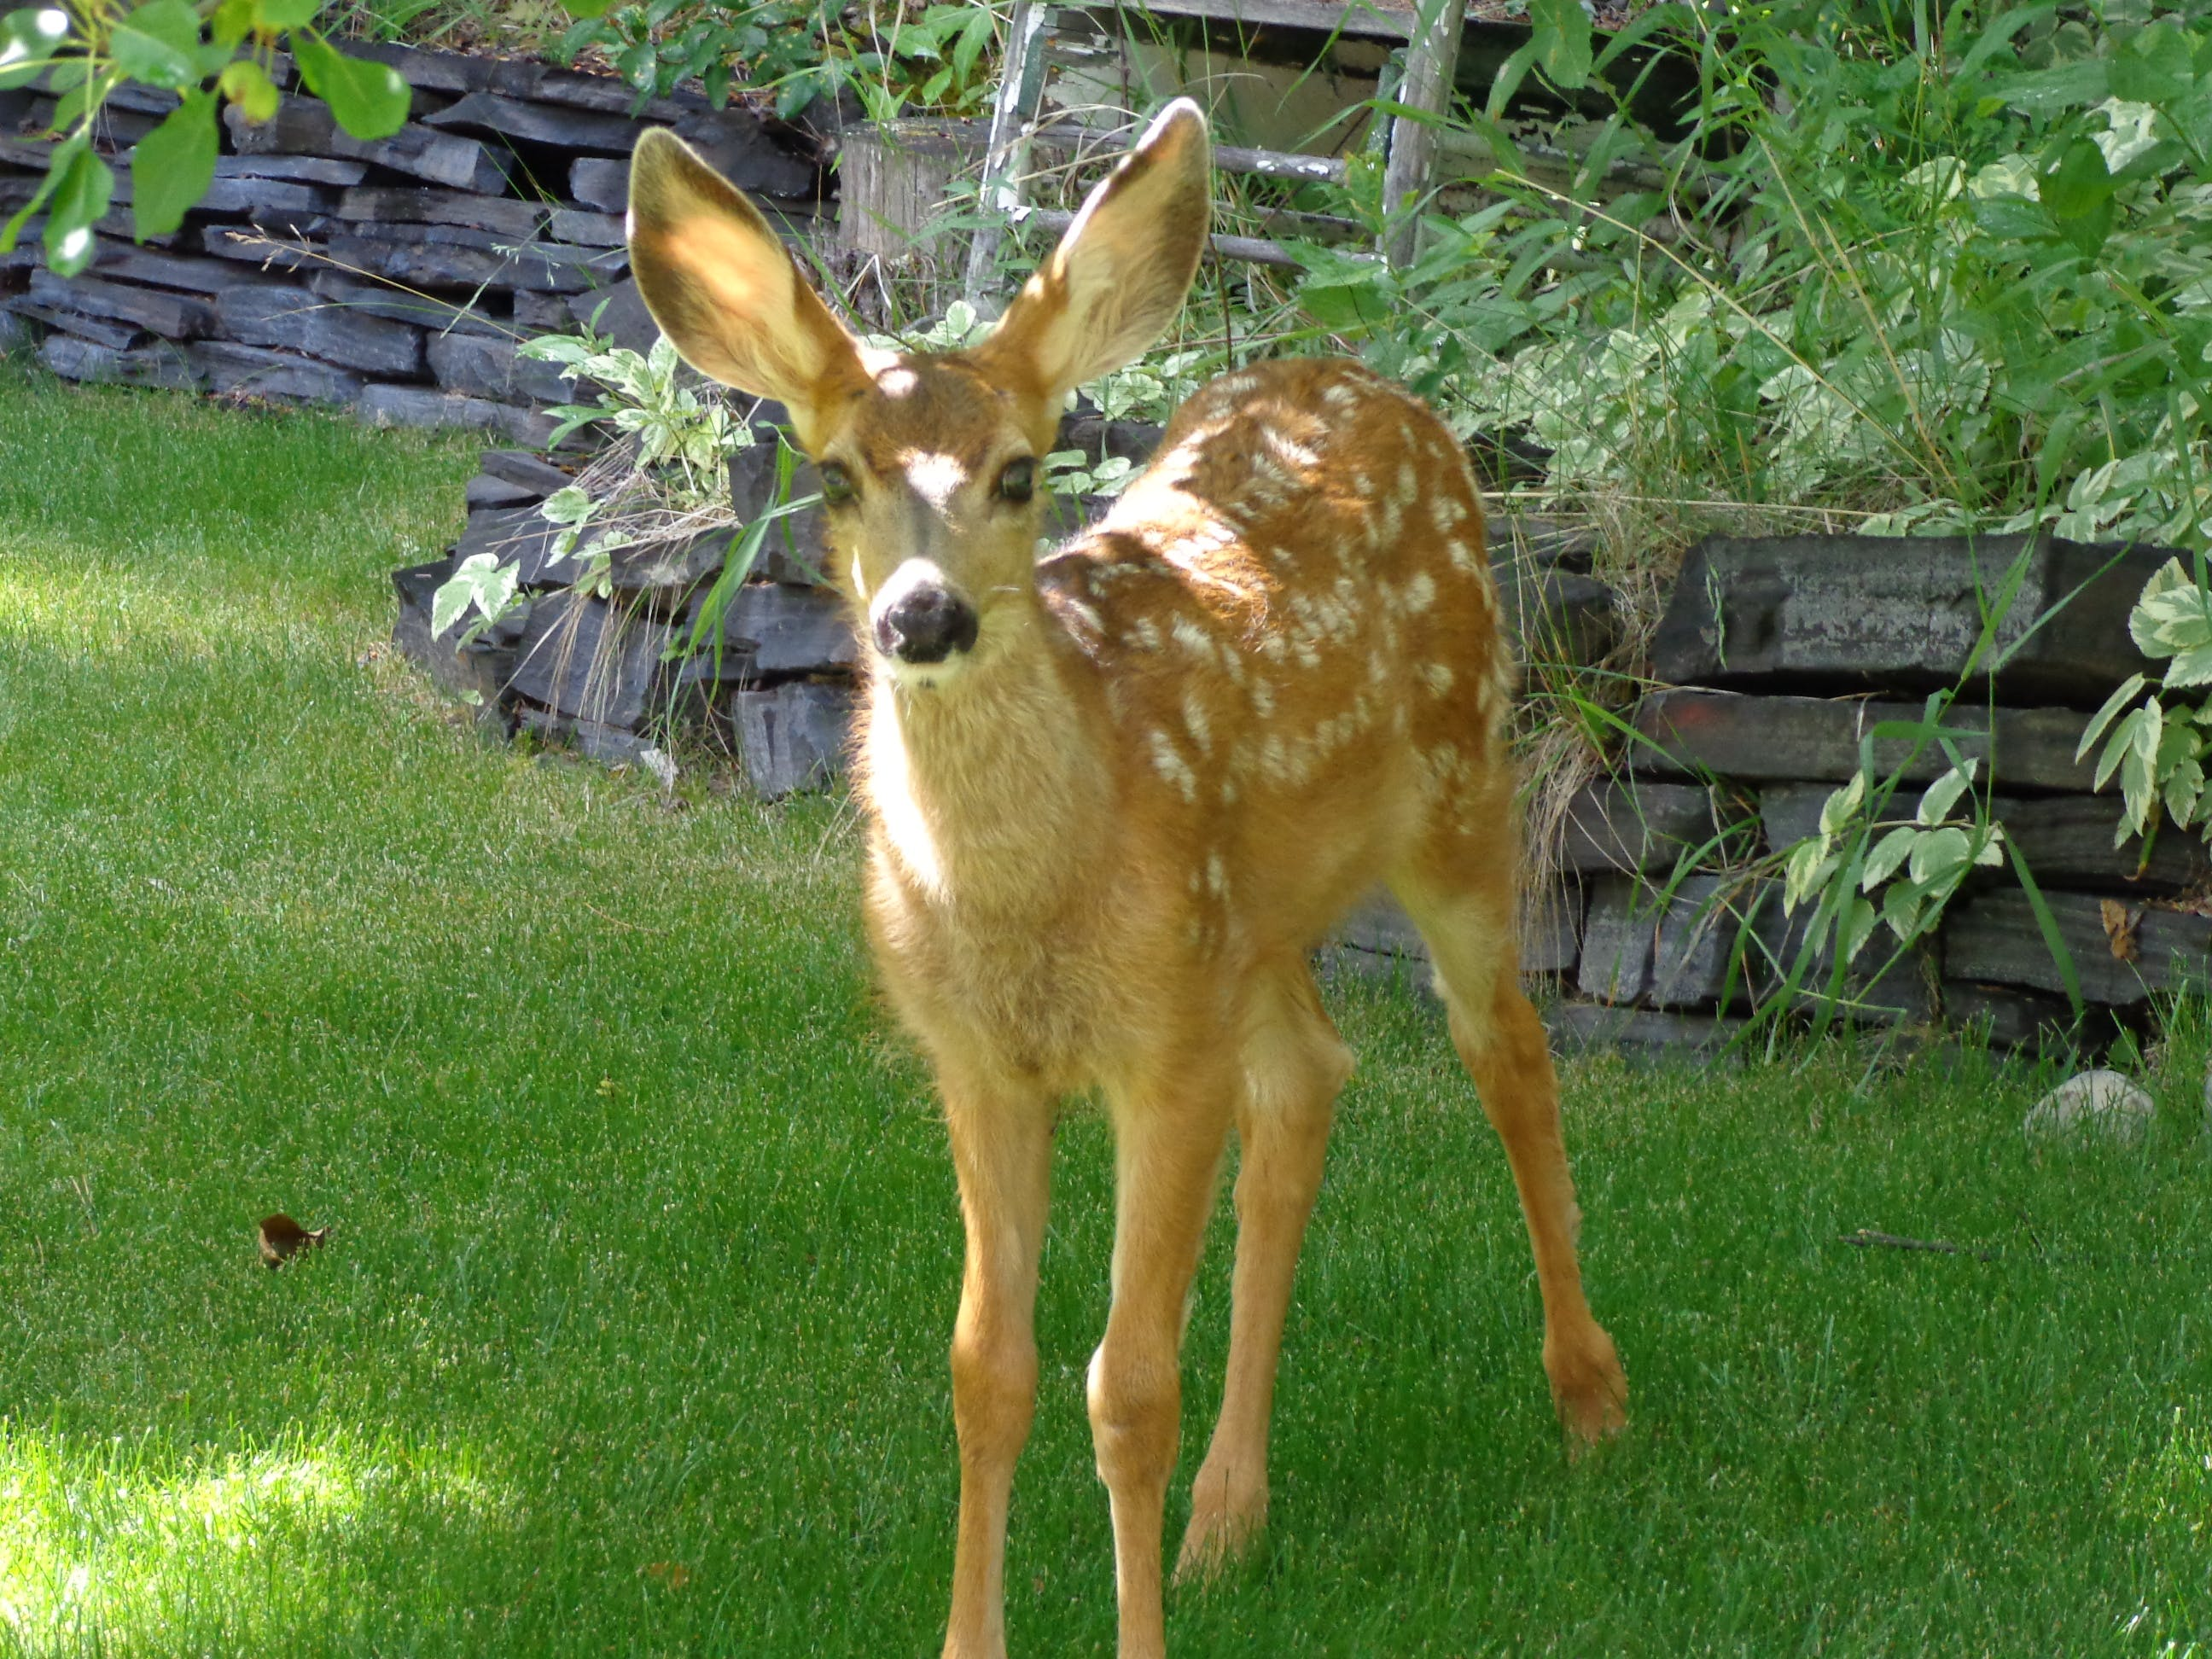 Bambi, our little deer, was born at in the forest behind Ballyrock Home